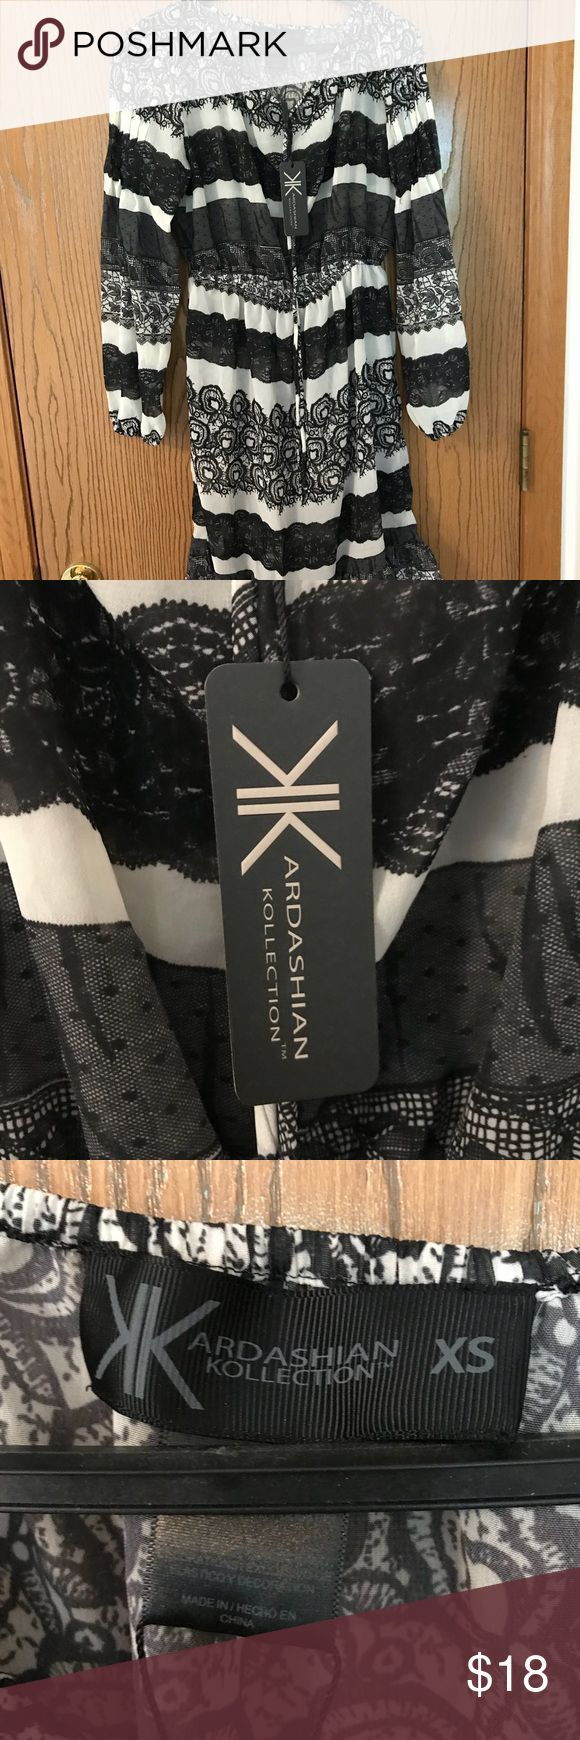 NWT Kardashian Kollection Dress XS Black and White Brand new with tags. From the Kardashian Kollection. Black and white print. Very flowy. It is see through. Used as a cover up or with an under dress! Feel free to ask questions and make offers :) Kardashian Kollection Dresses Long Sleeve